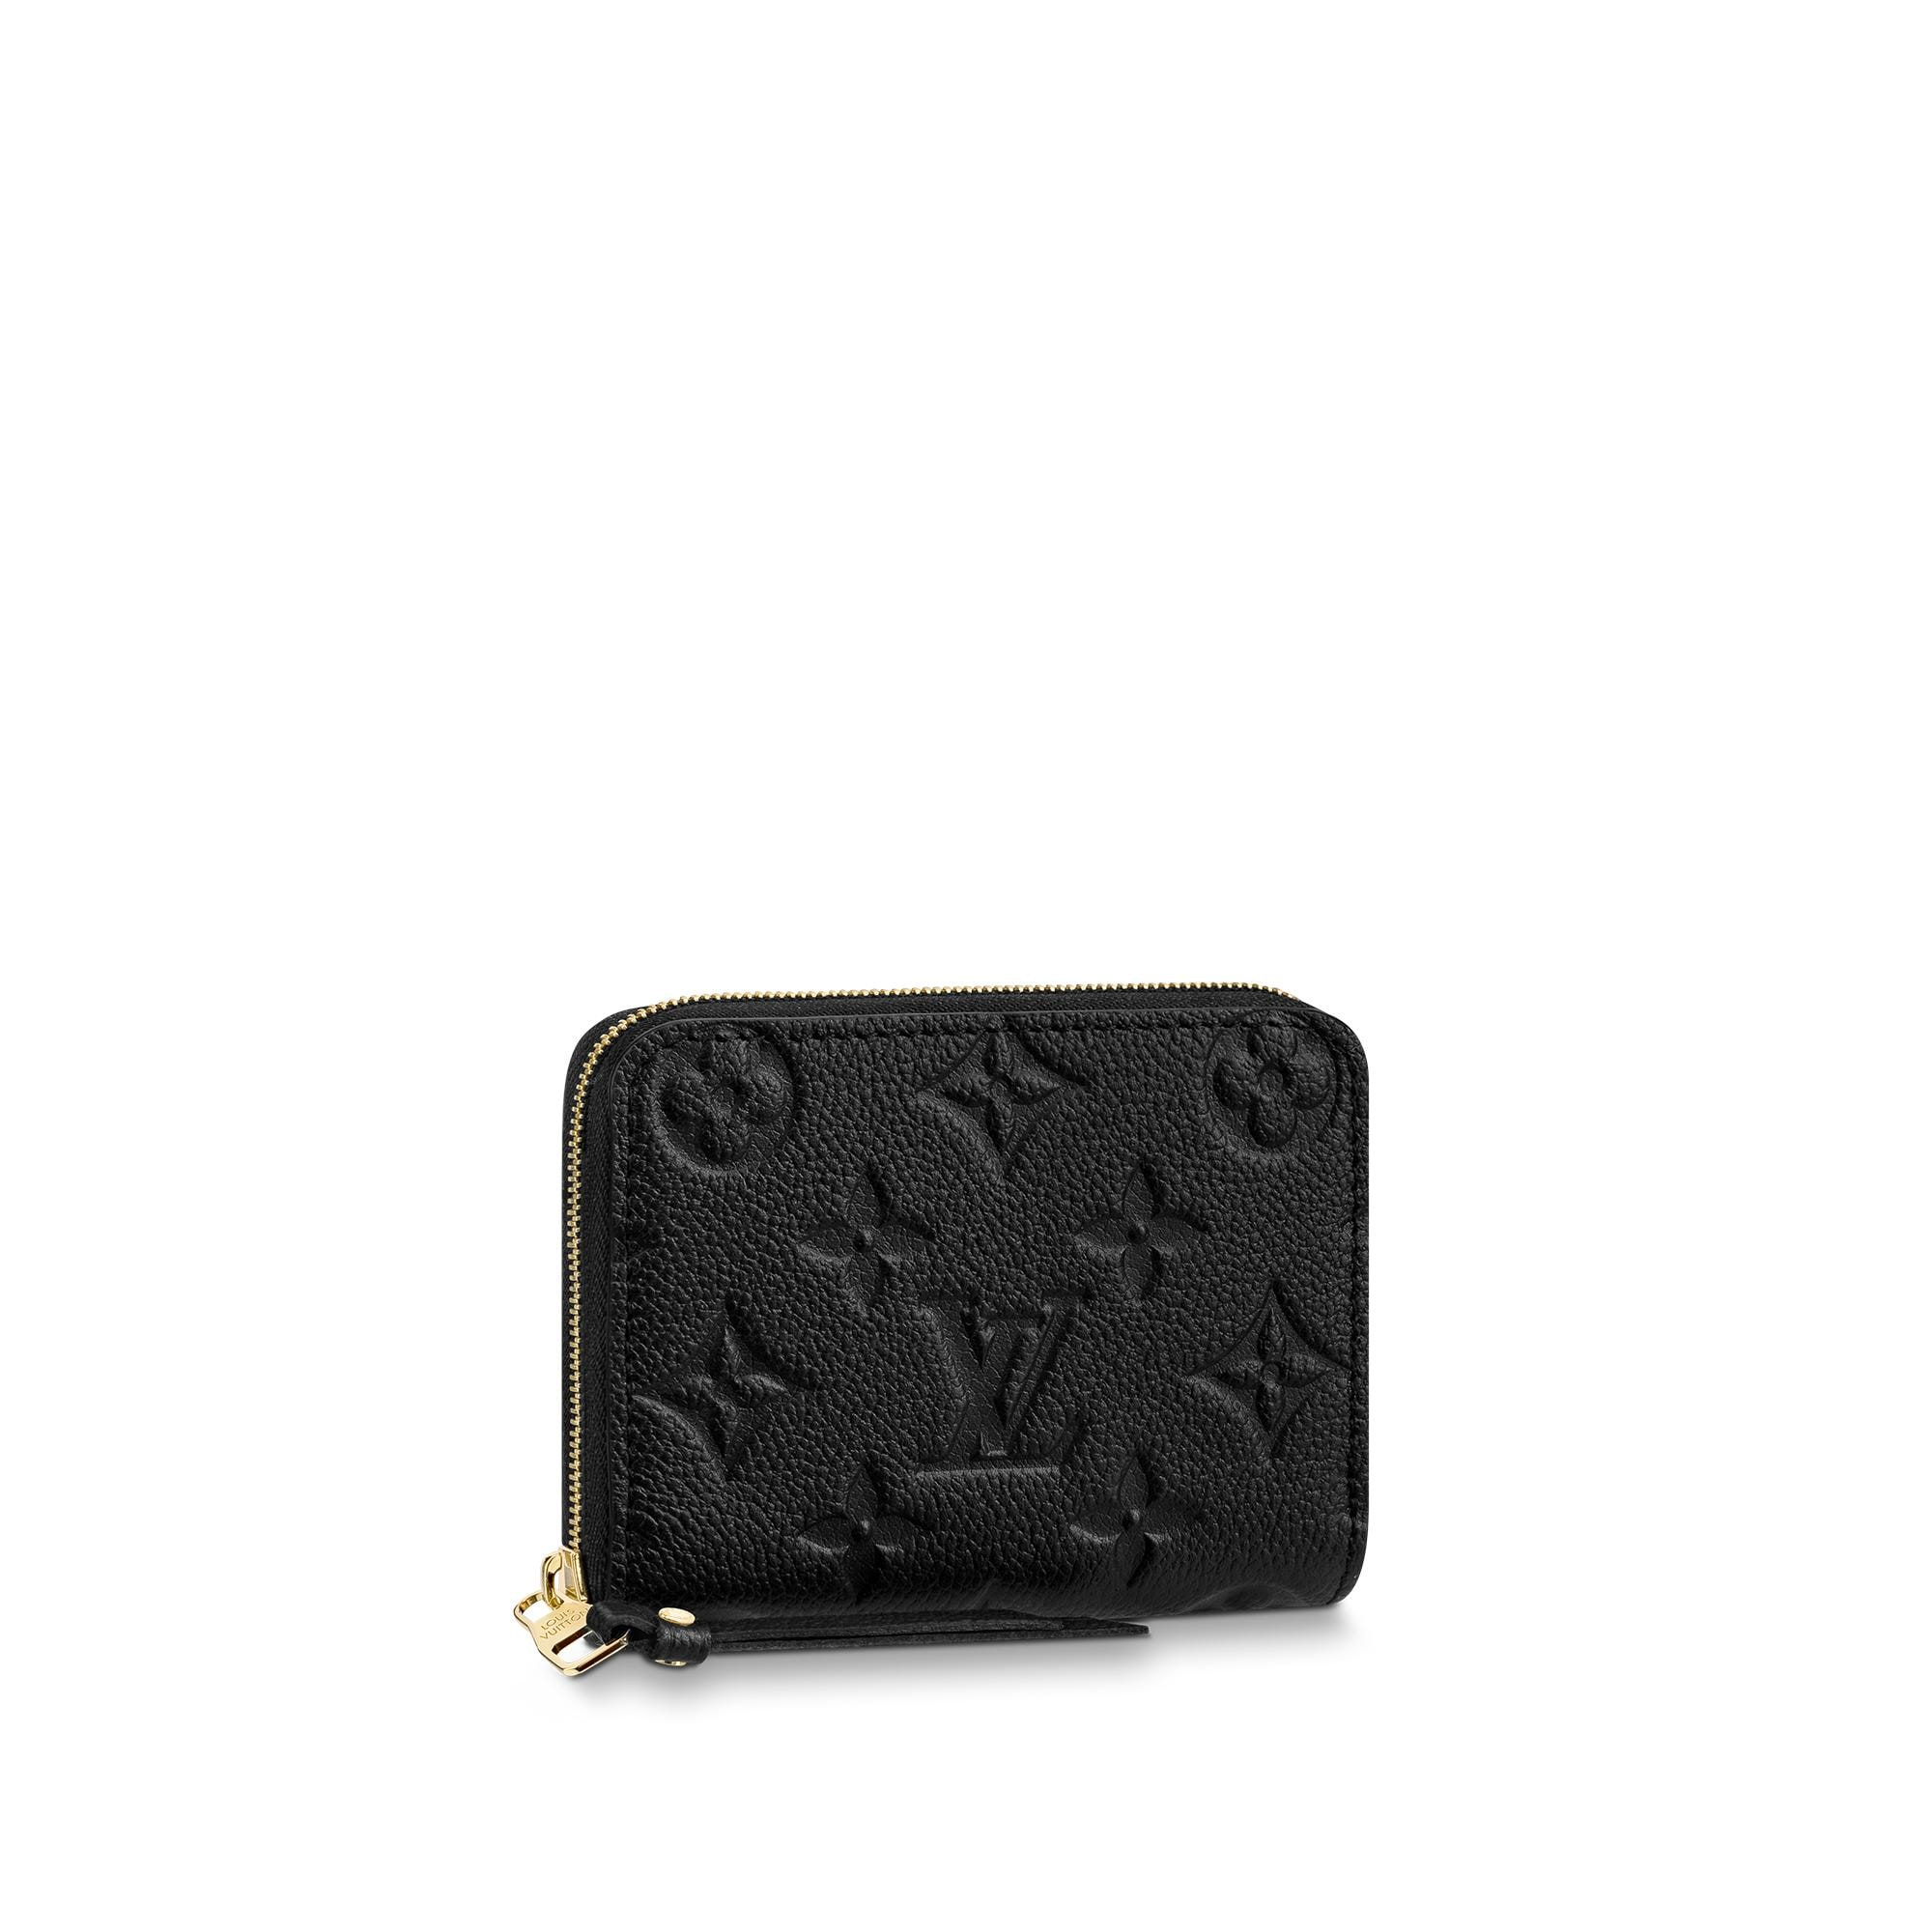 Le Meilleur Zippy Coin Purse Monogram Empreinte Leather Small Ce Mois Ci